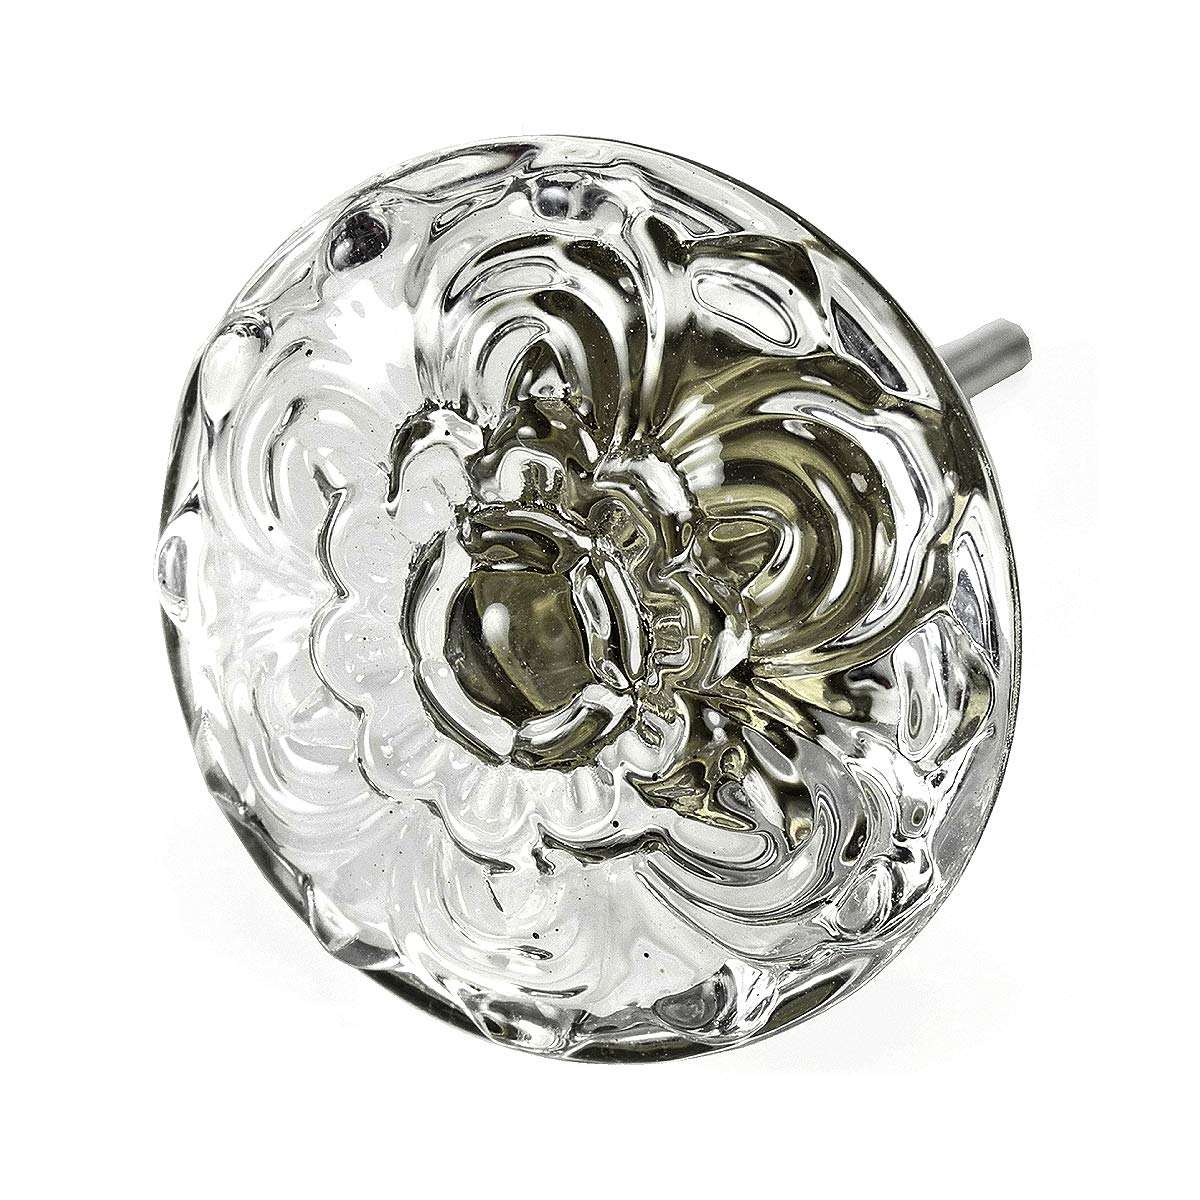 Ornate Cabinet Knobs Glass Vanity Drawer Pulls Dresser Handles Vintage 4 Pack T103VF Large 45mm Clear Embossed Daisy Knob with Antique Brass Base. Romantic Decor & More